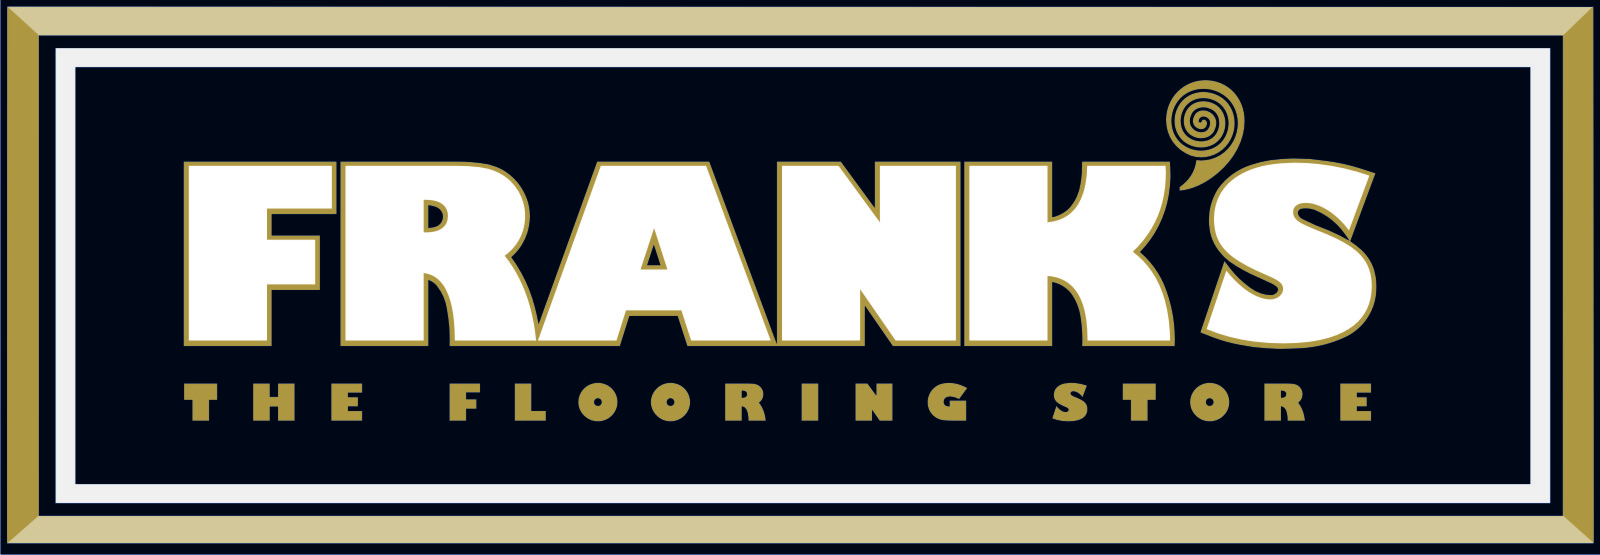 FRANKS THE FLOORING STORE